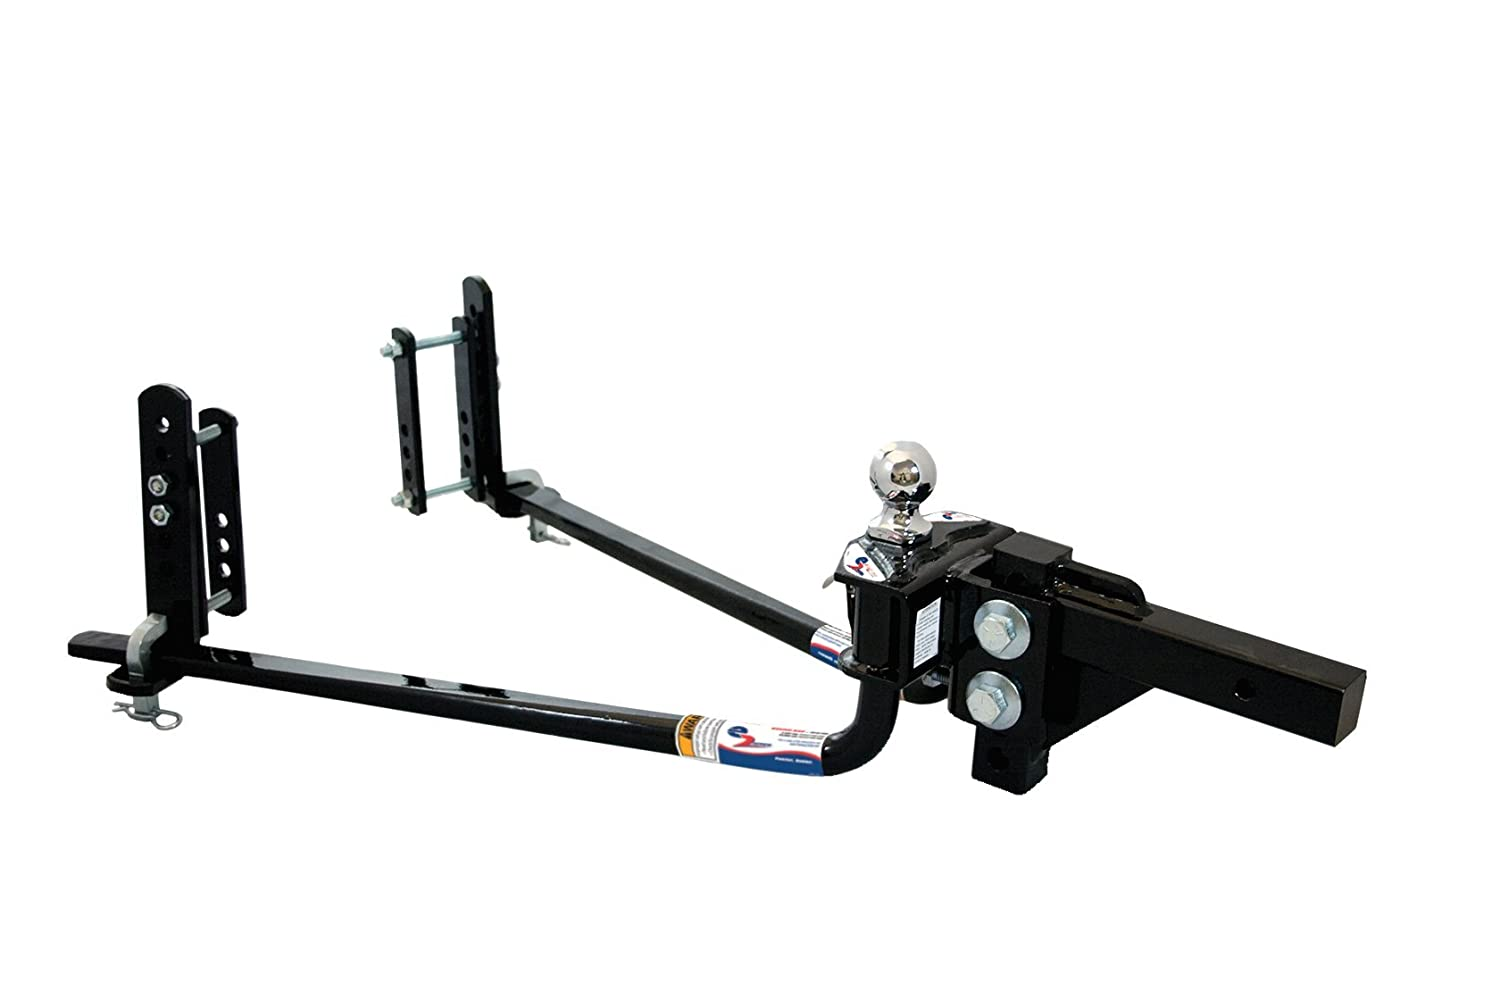 10K RB NO SHANK Fastway e2 2-point sway control hitch